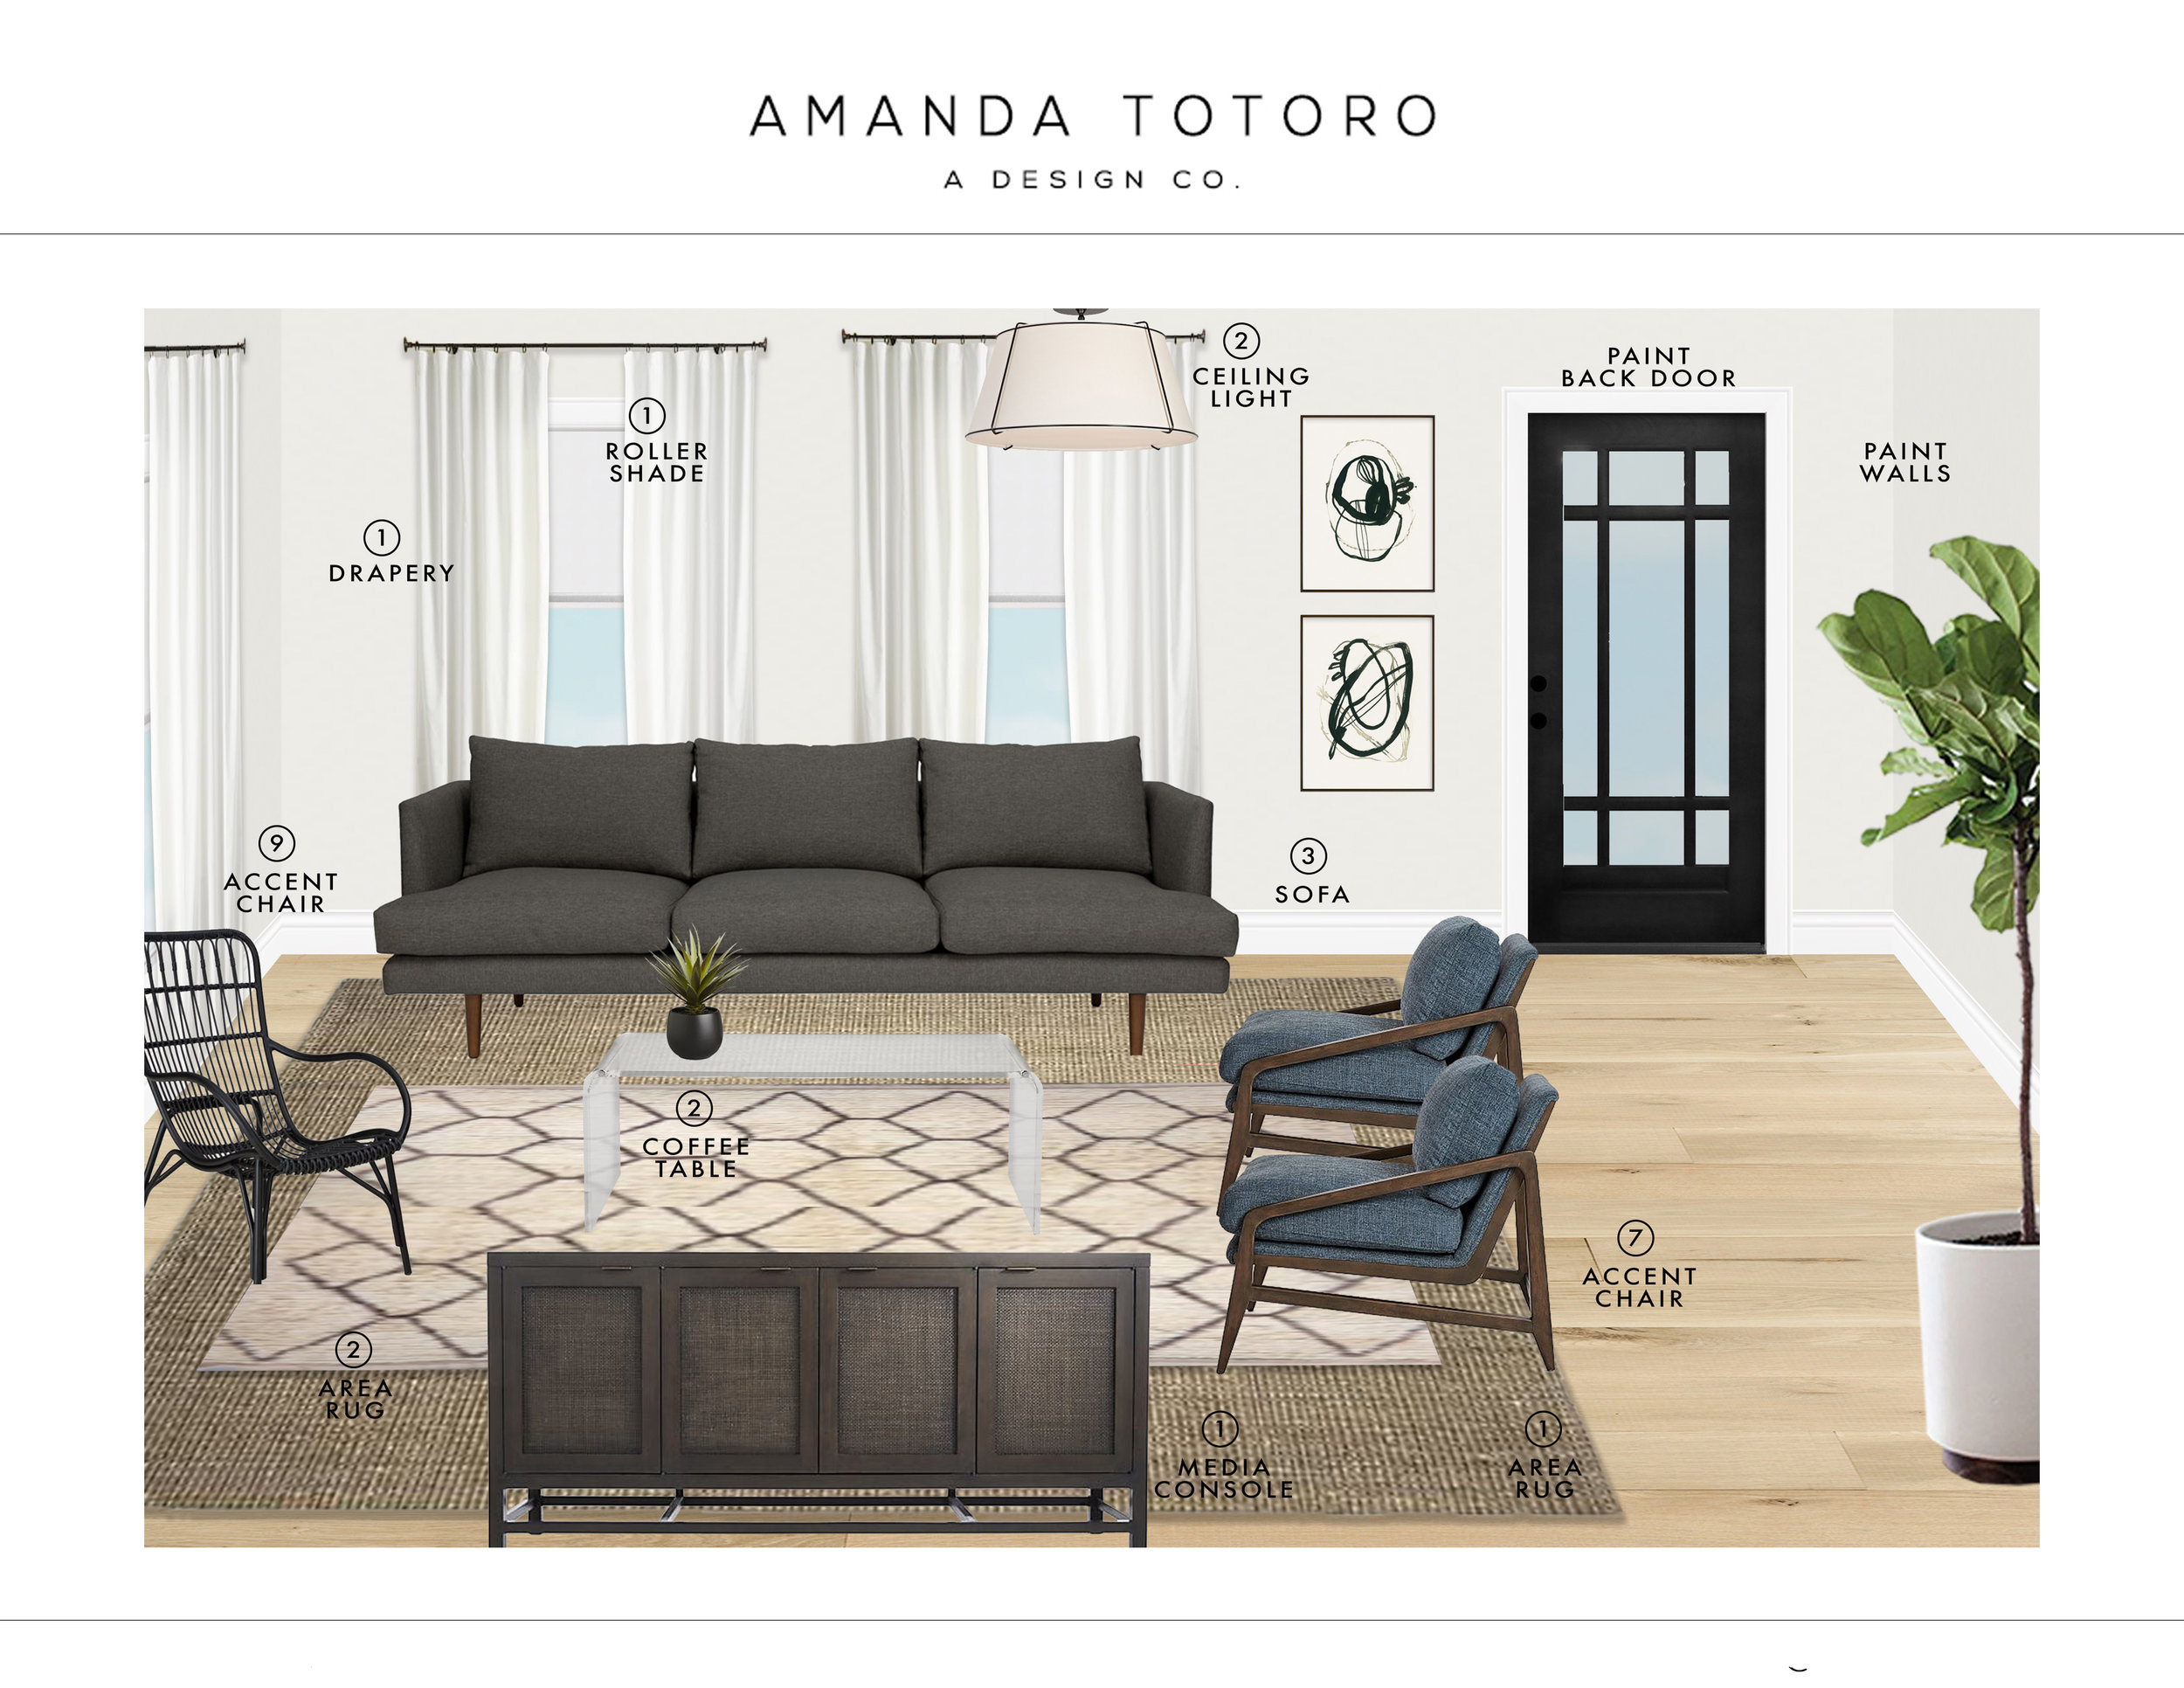 4. design board - The design board will display the selections we have made and illustrates the room as a whole.